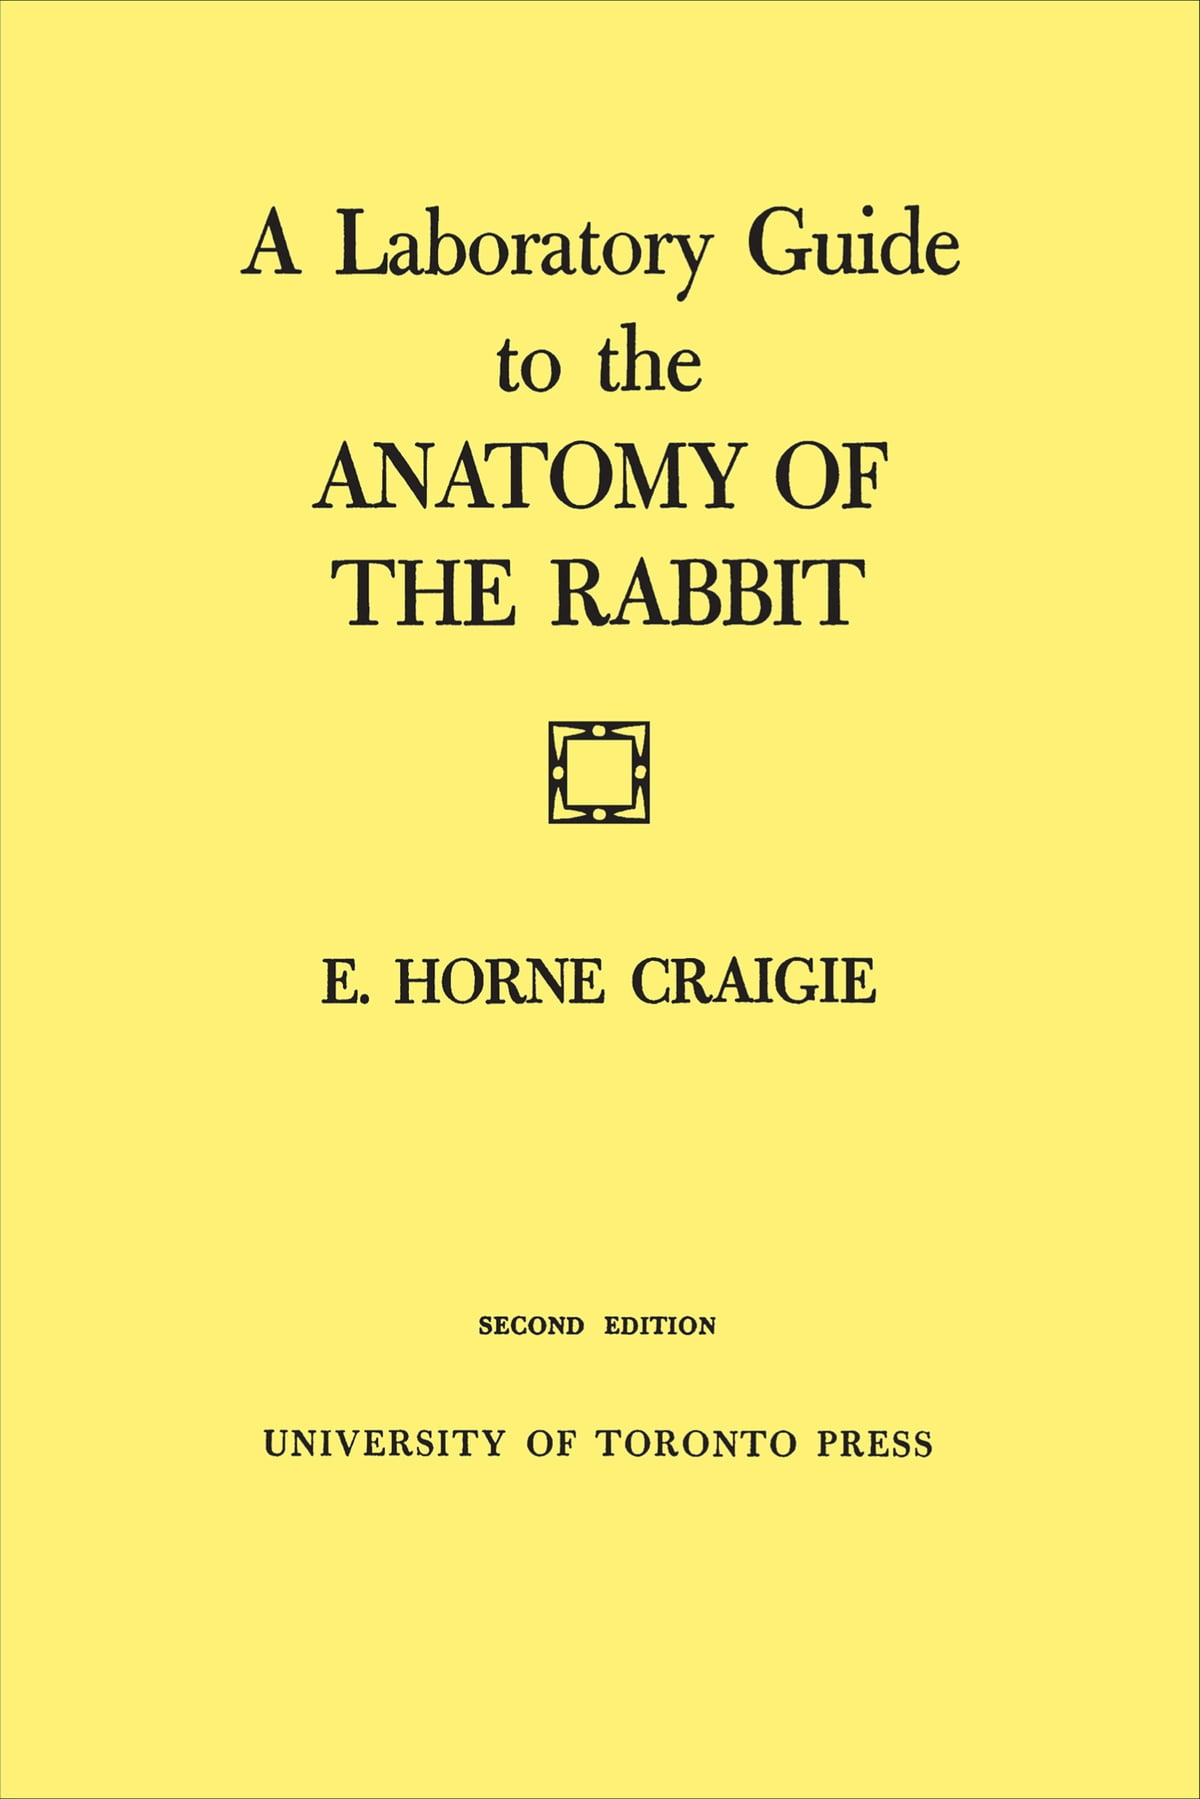 A Laboratory Guide To The Anatomy Of The Rabbit Ebook By Edward